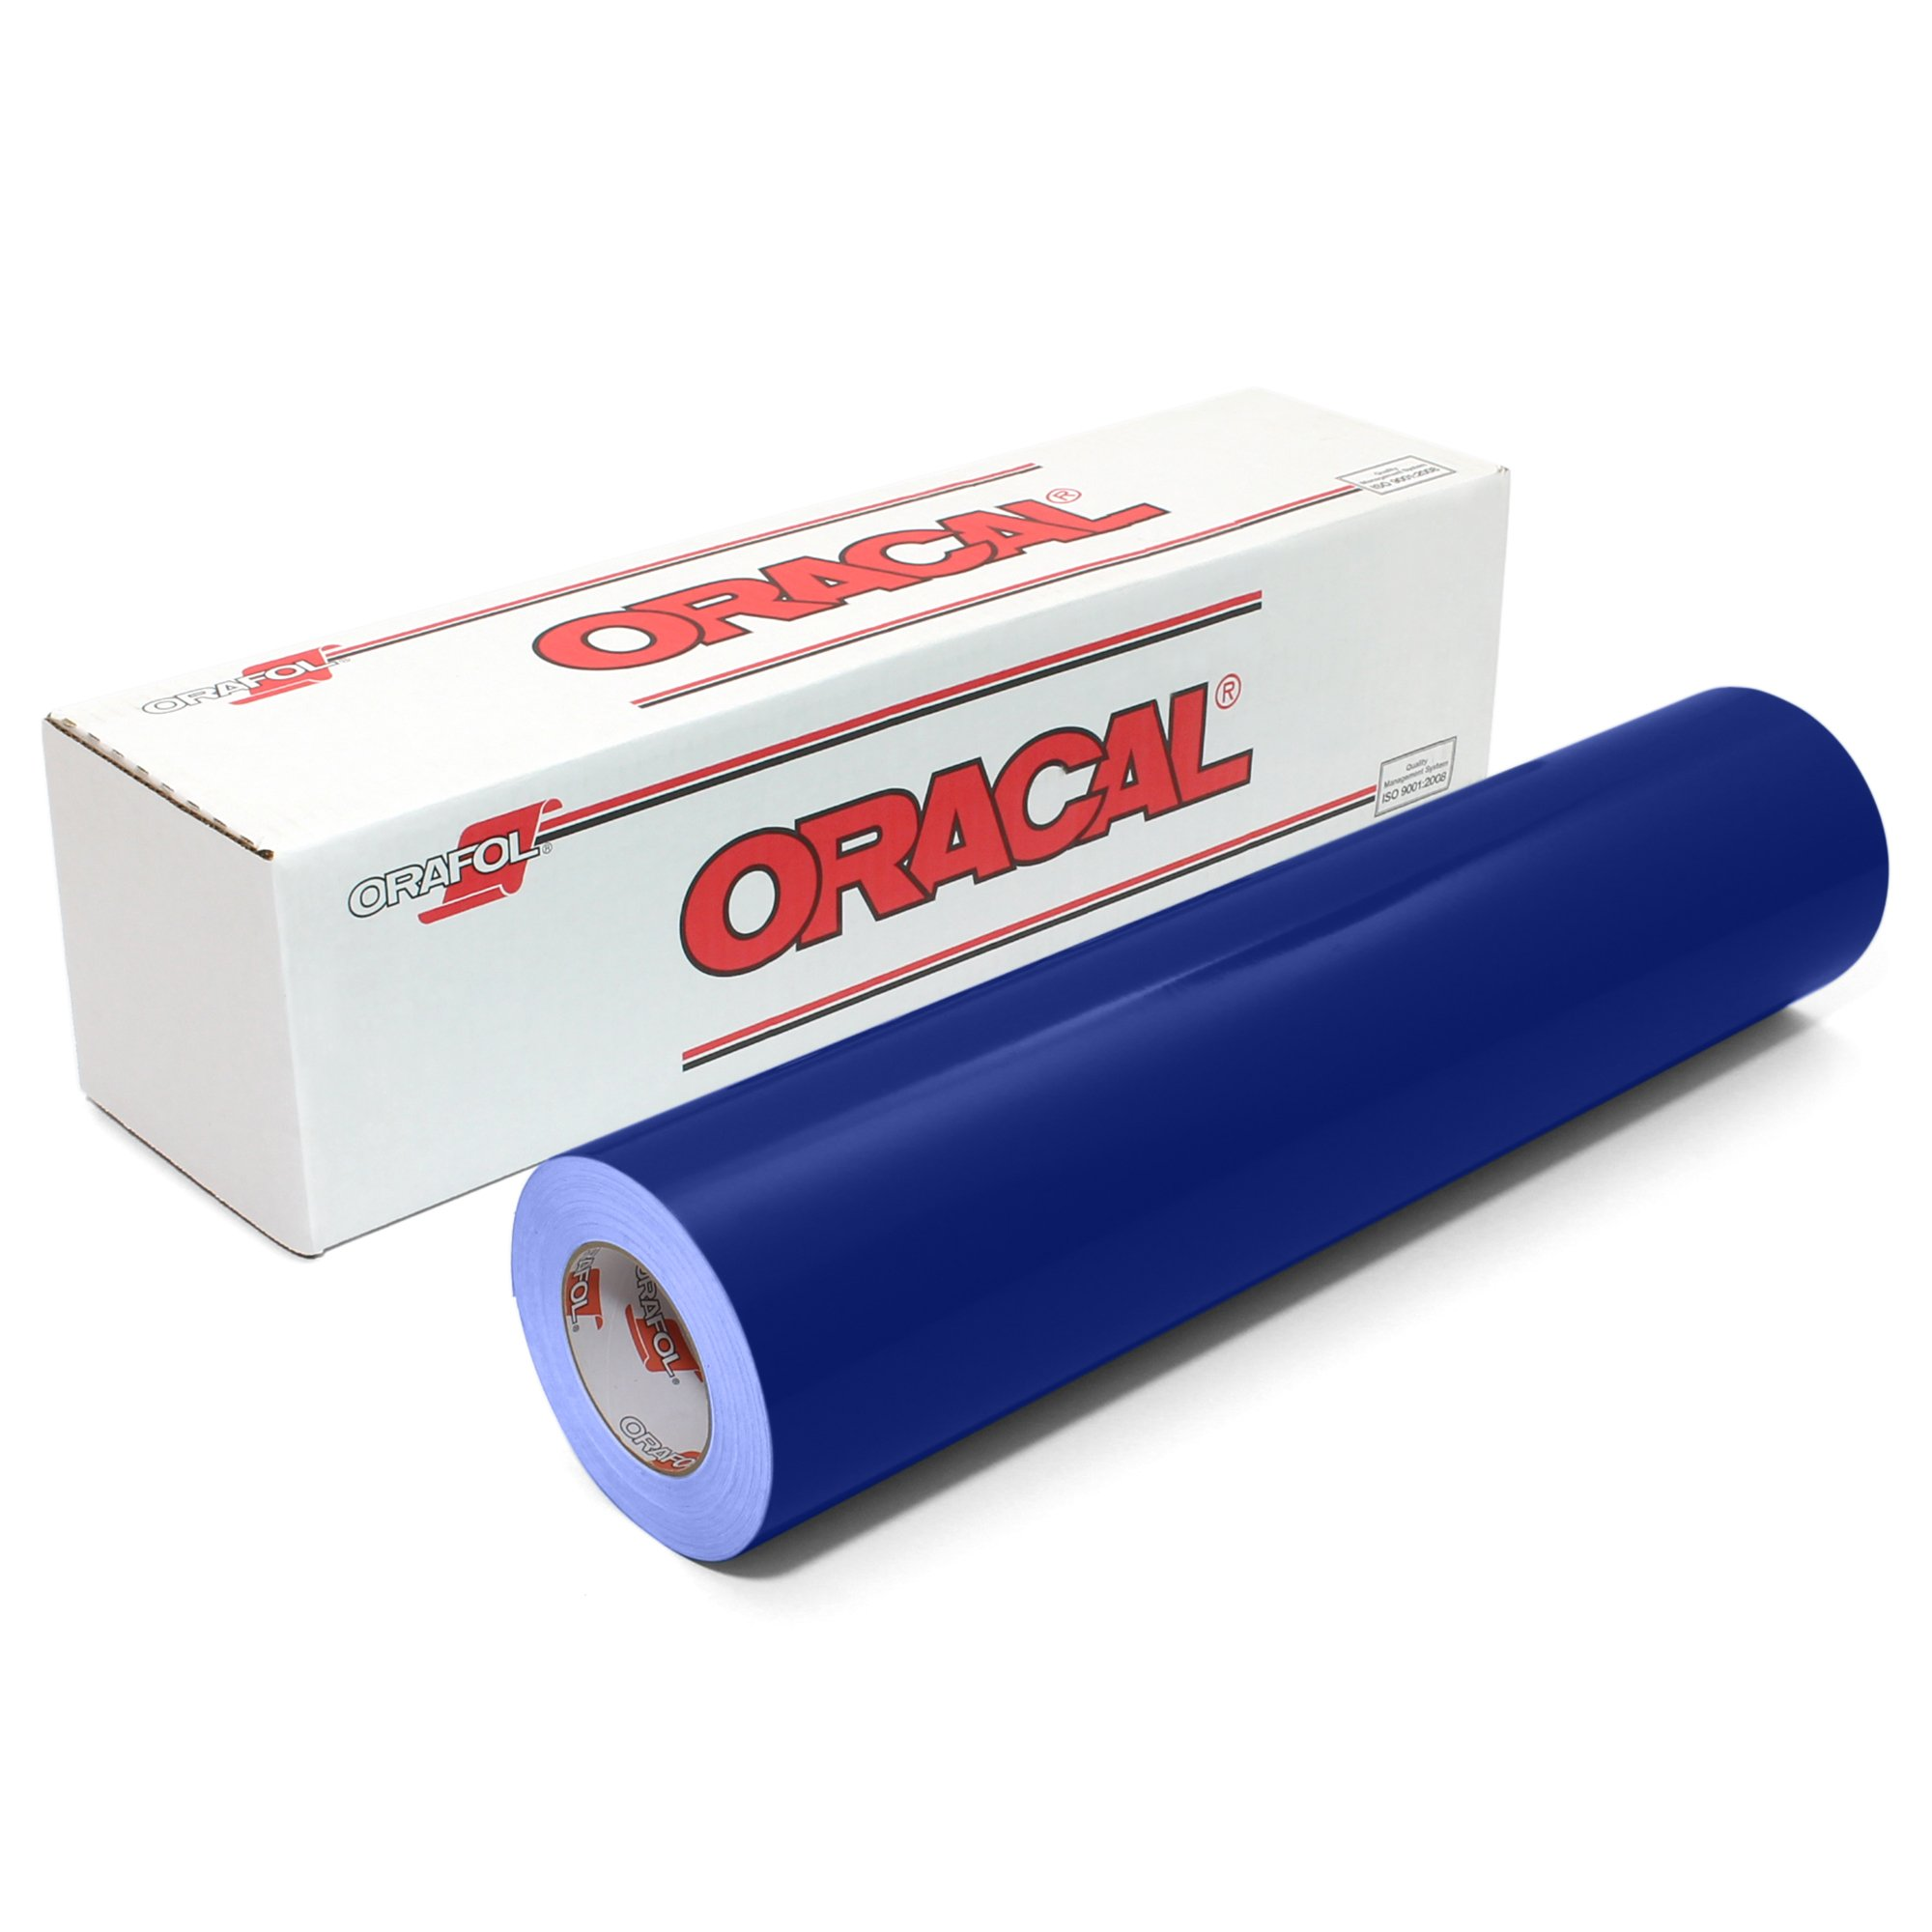 Oracal 651 Glossy Vinyl Roll 24 Inches by 150 Feet - Cobalt Blue by ORACAL